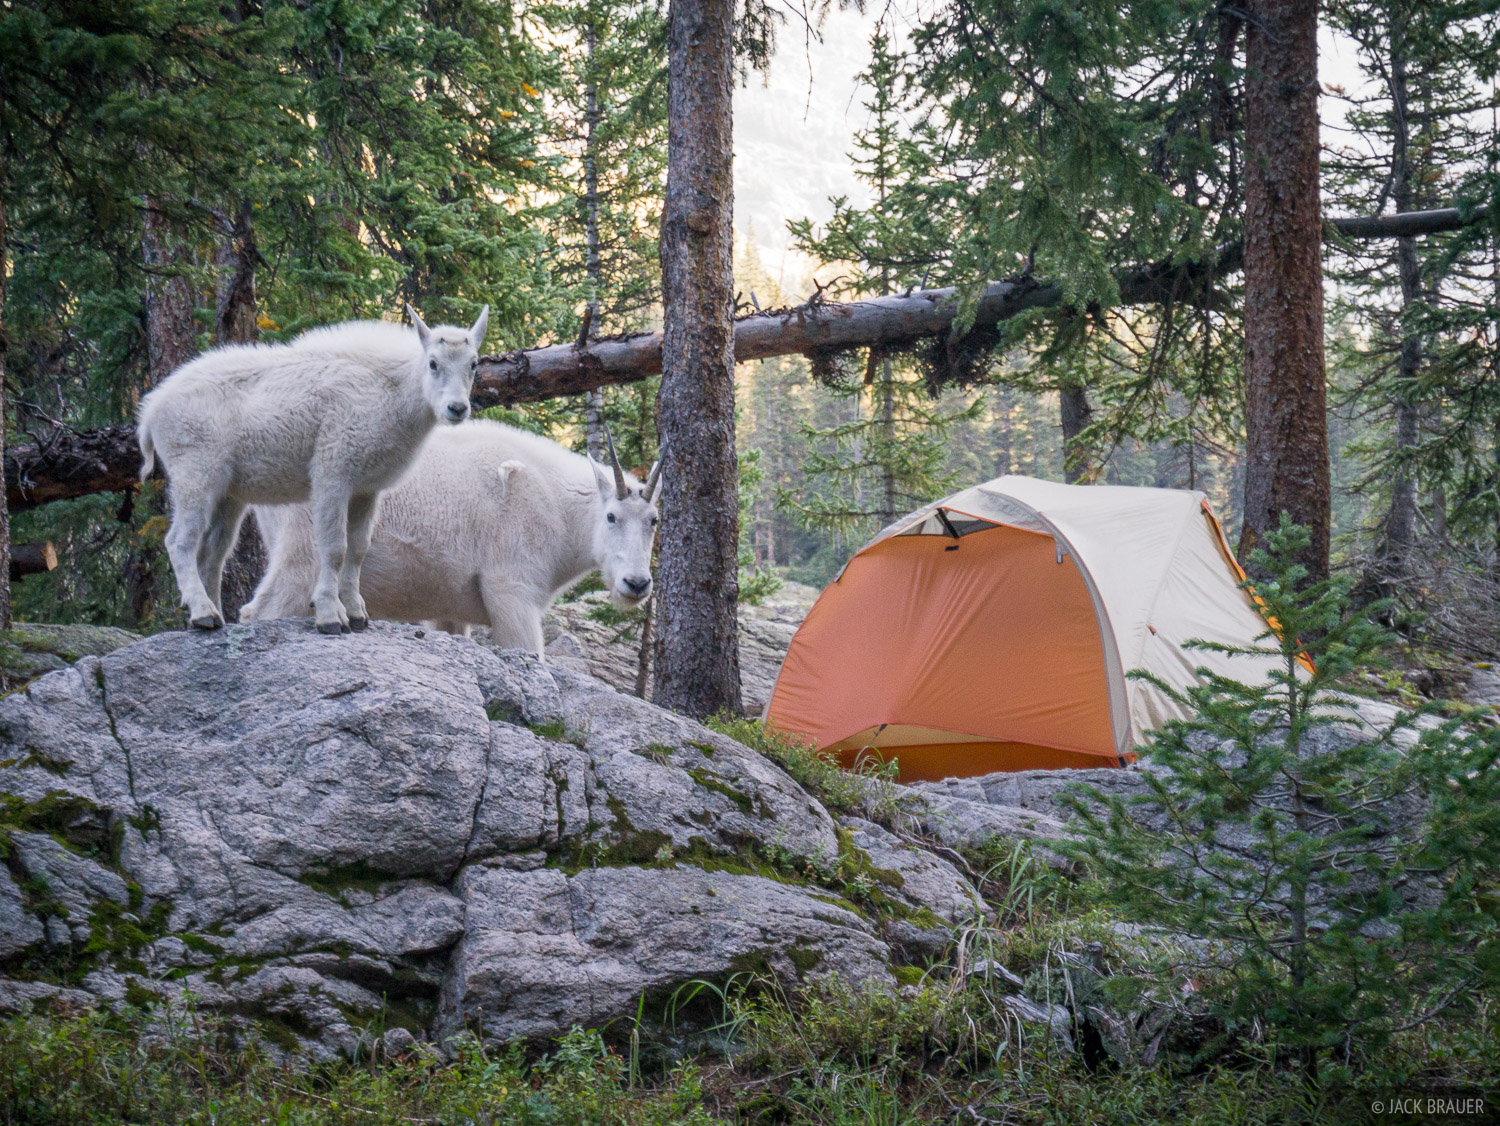 Mountain goats, Weminuche Wilderness, San Juan Mountains, Colorado, tent, photo